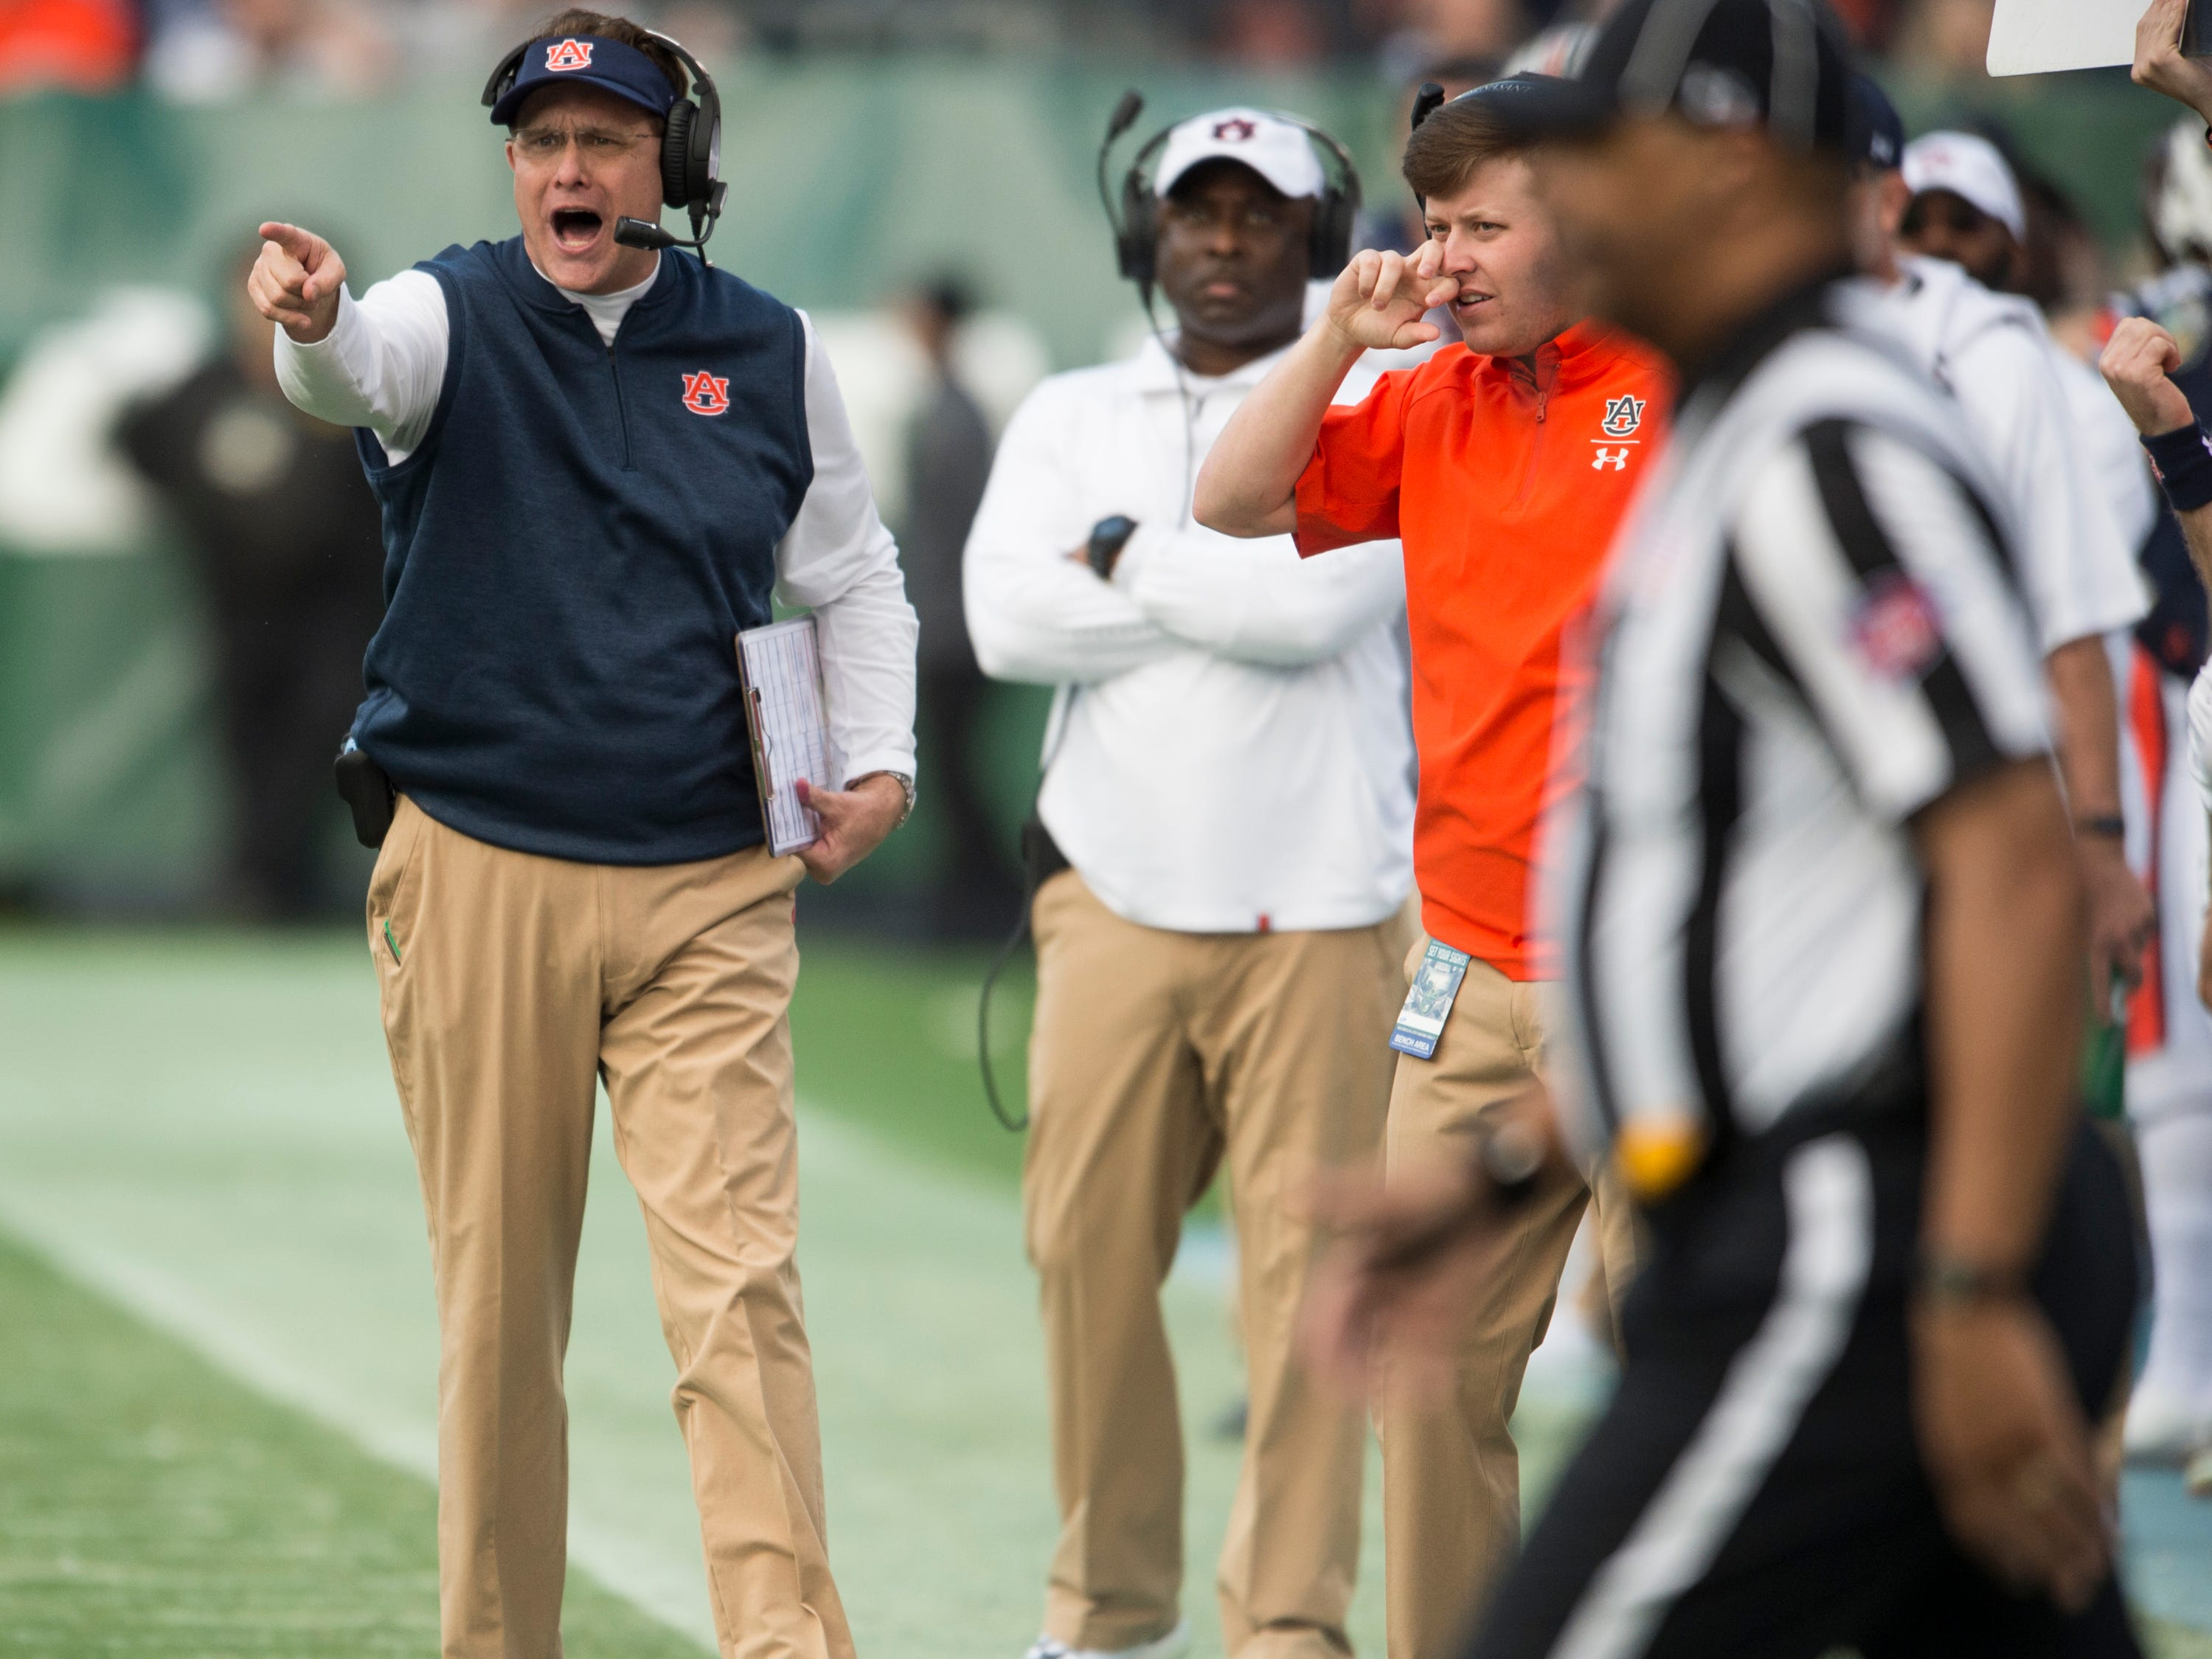 Auburn head coach Gus Malzahn yells from the sideline during the Music City Bowl at Nissan Stadium in Nashville, Tenn., on Friday, Dec. 28, 2018. Auburn defeated Purdue 63-14.